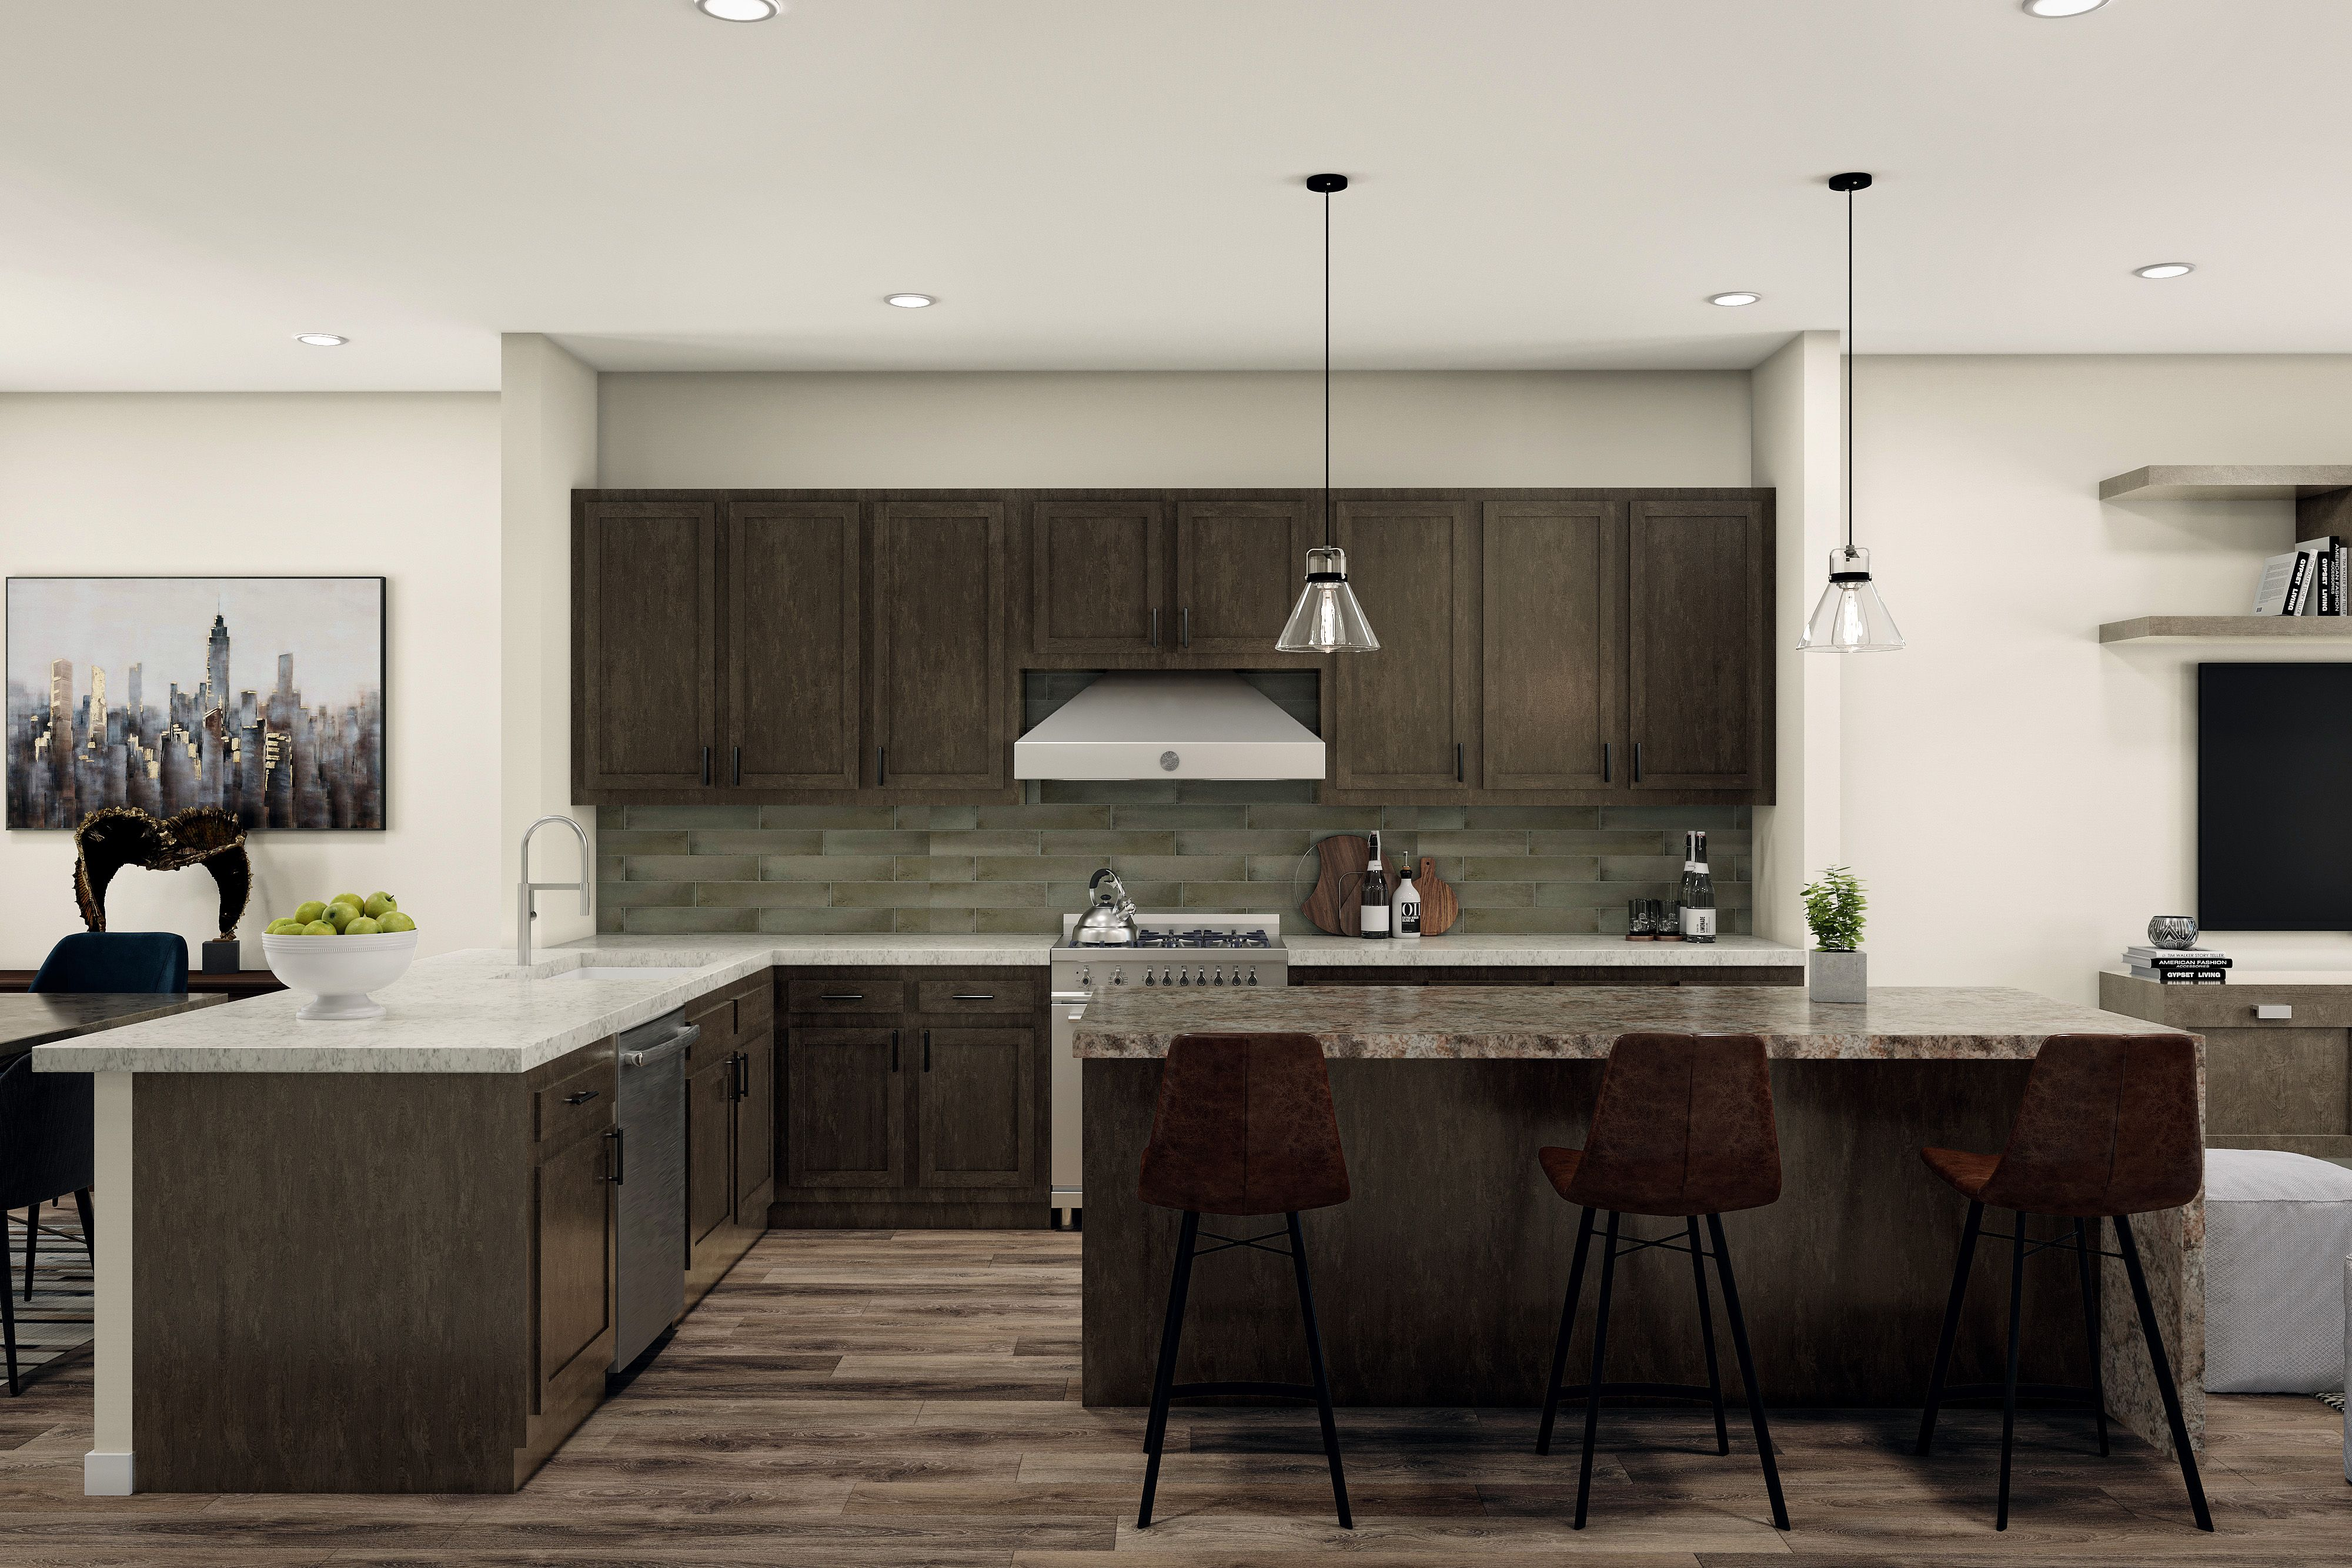 Kitchen featured in the Plan B By Madrid Builders in Los Angeles, CA